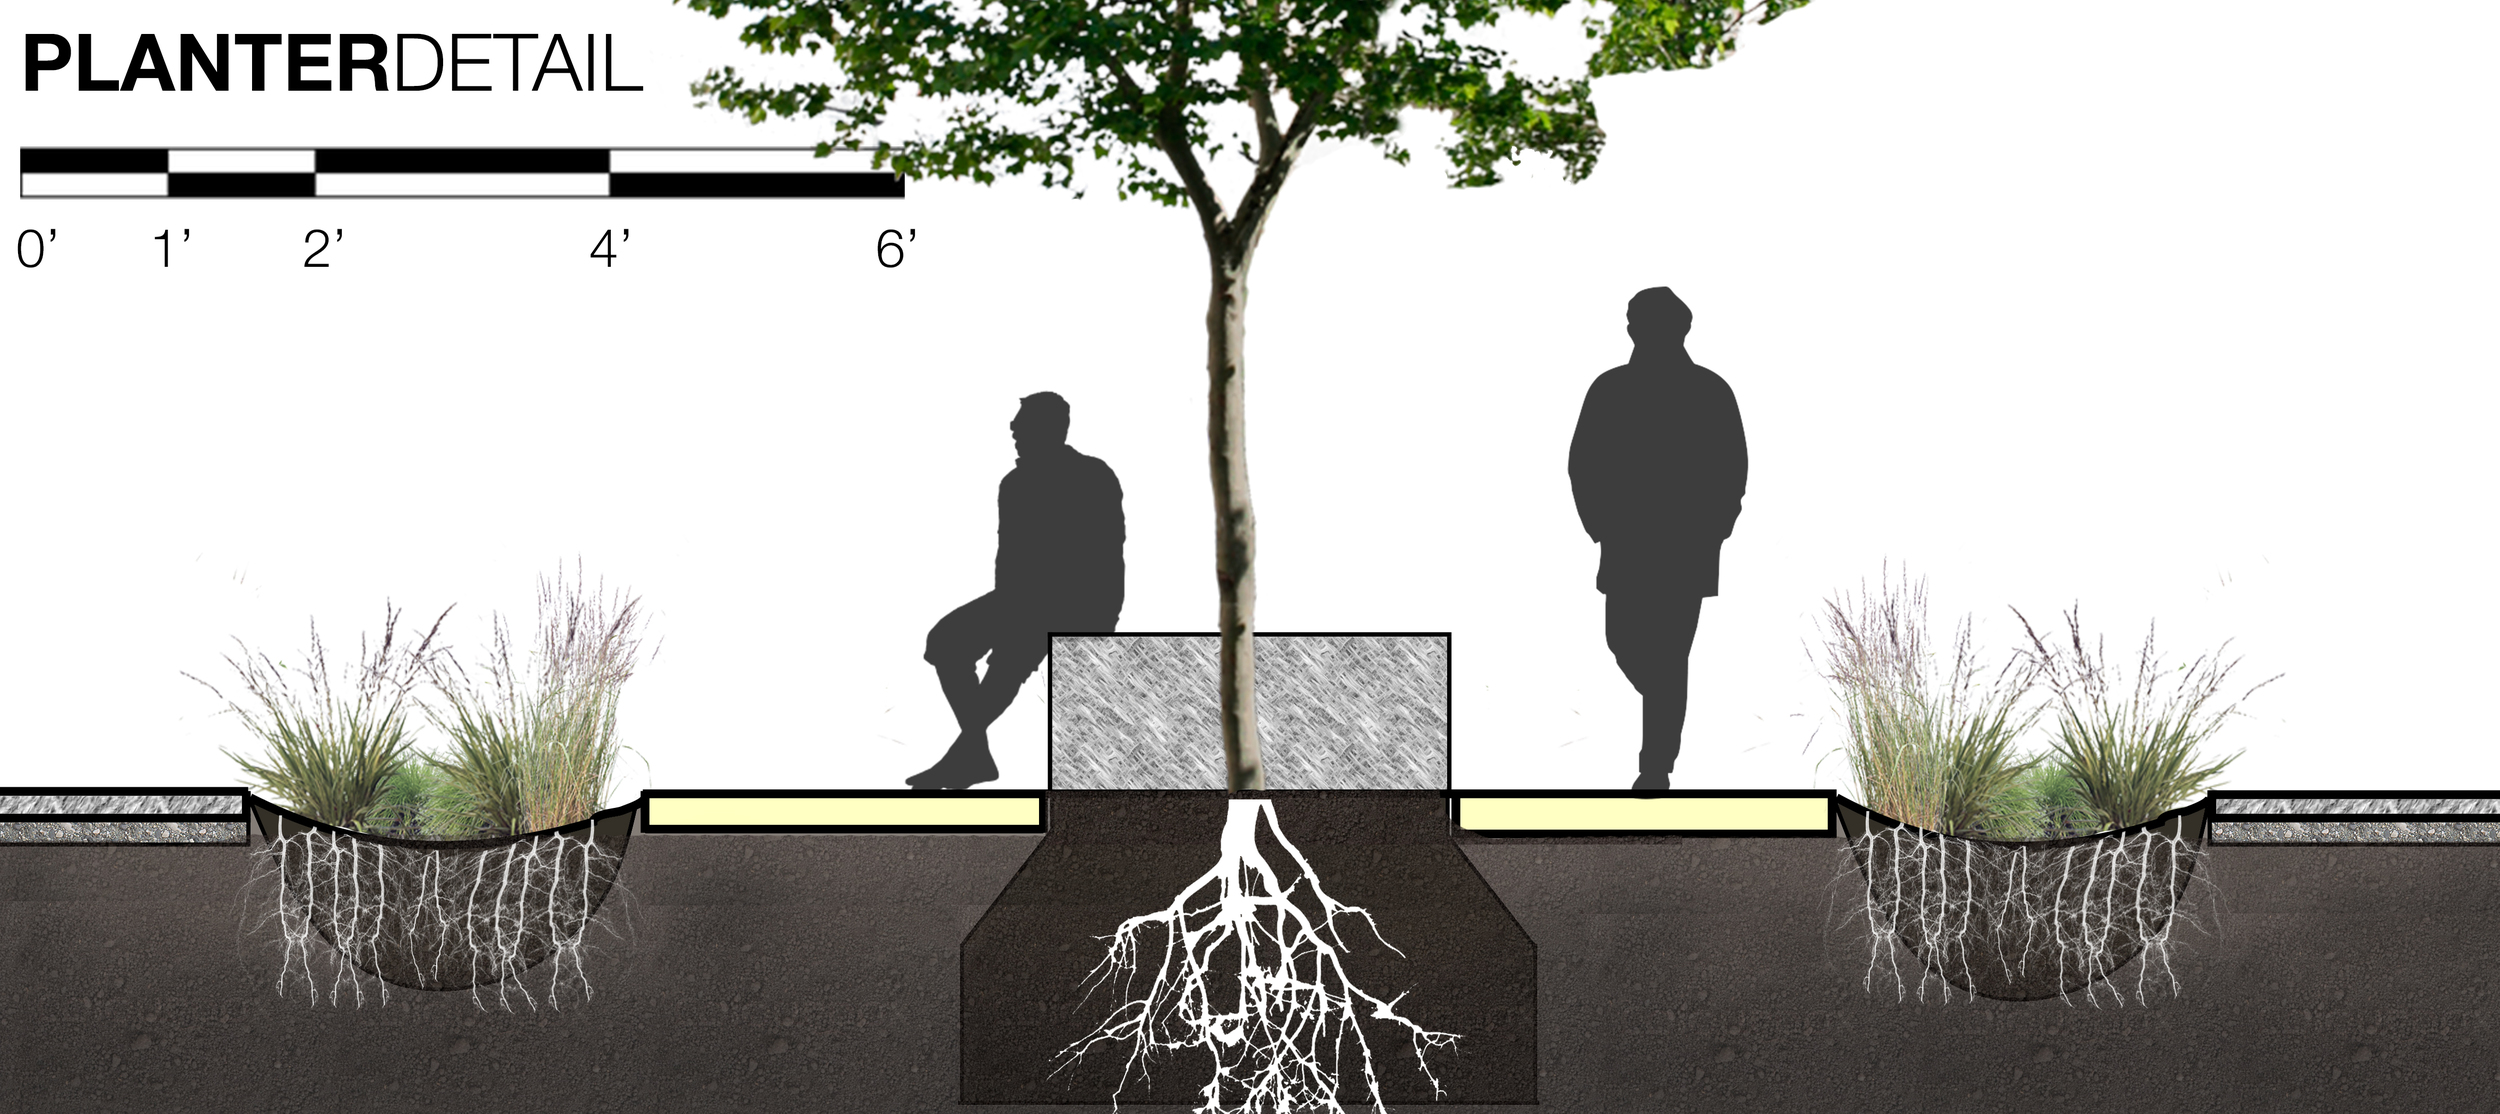 Inbetween each tree would be a lit walkway as well as a place for seating.